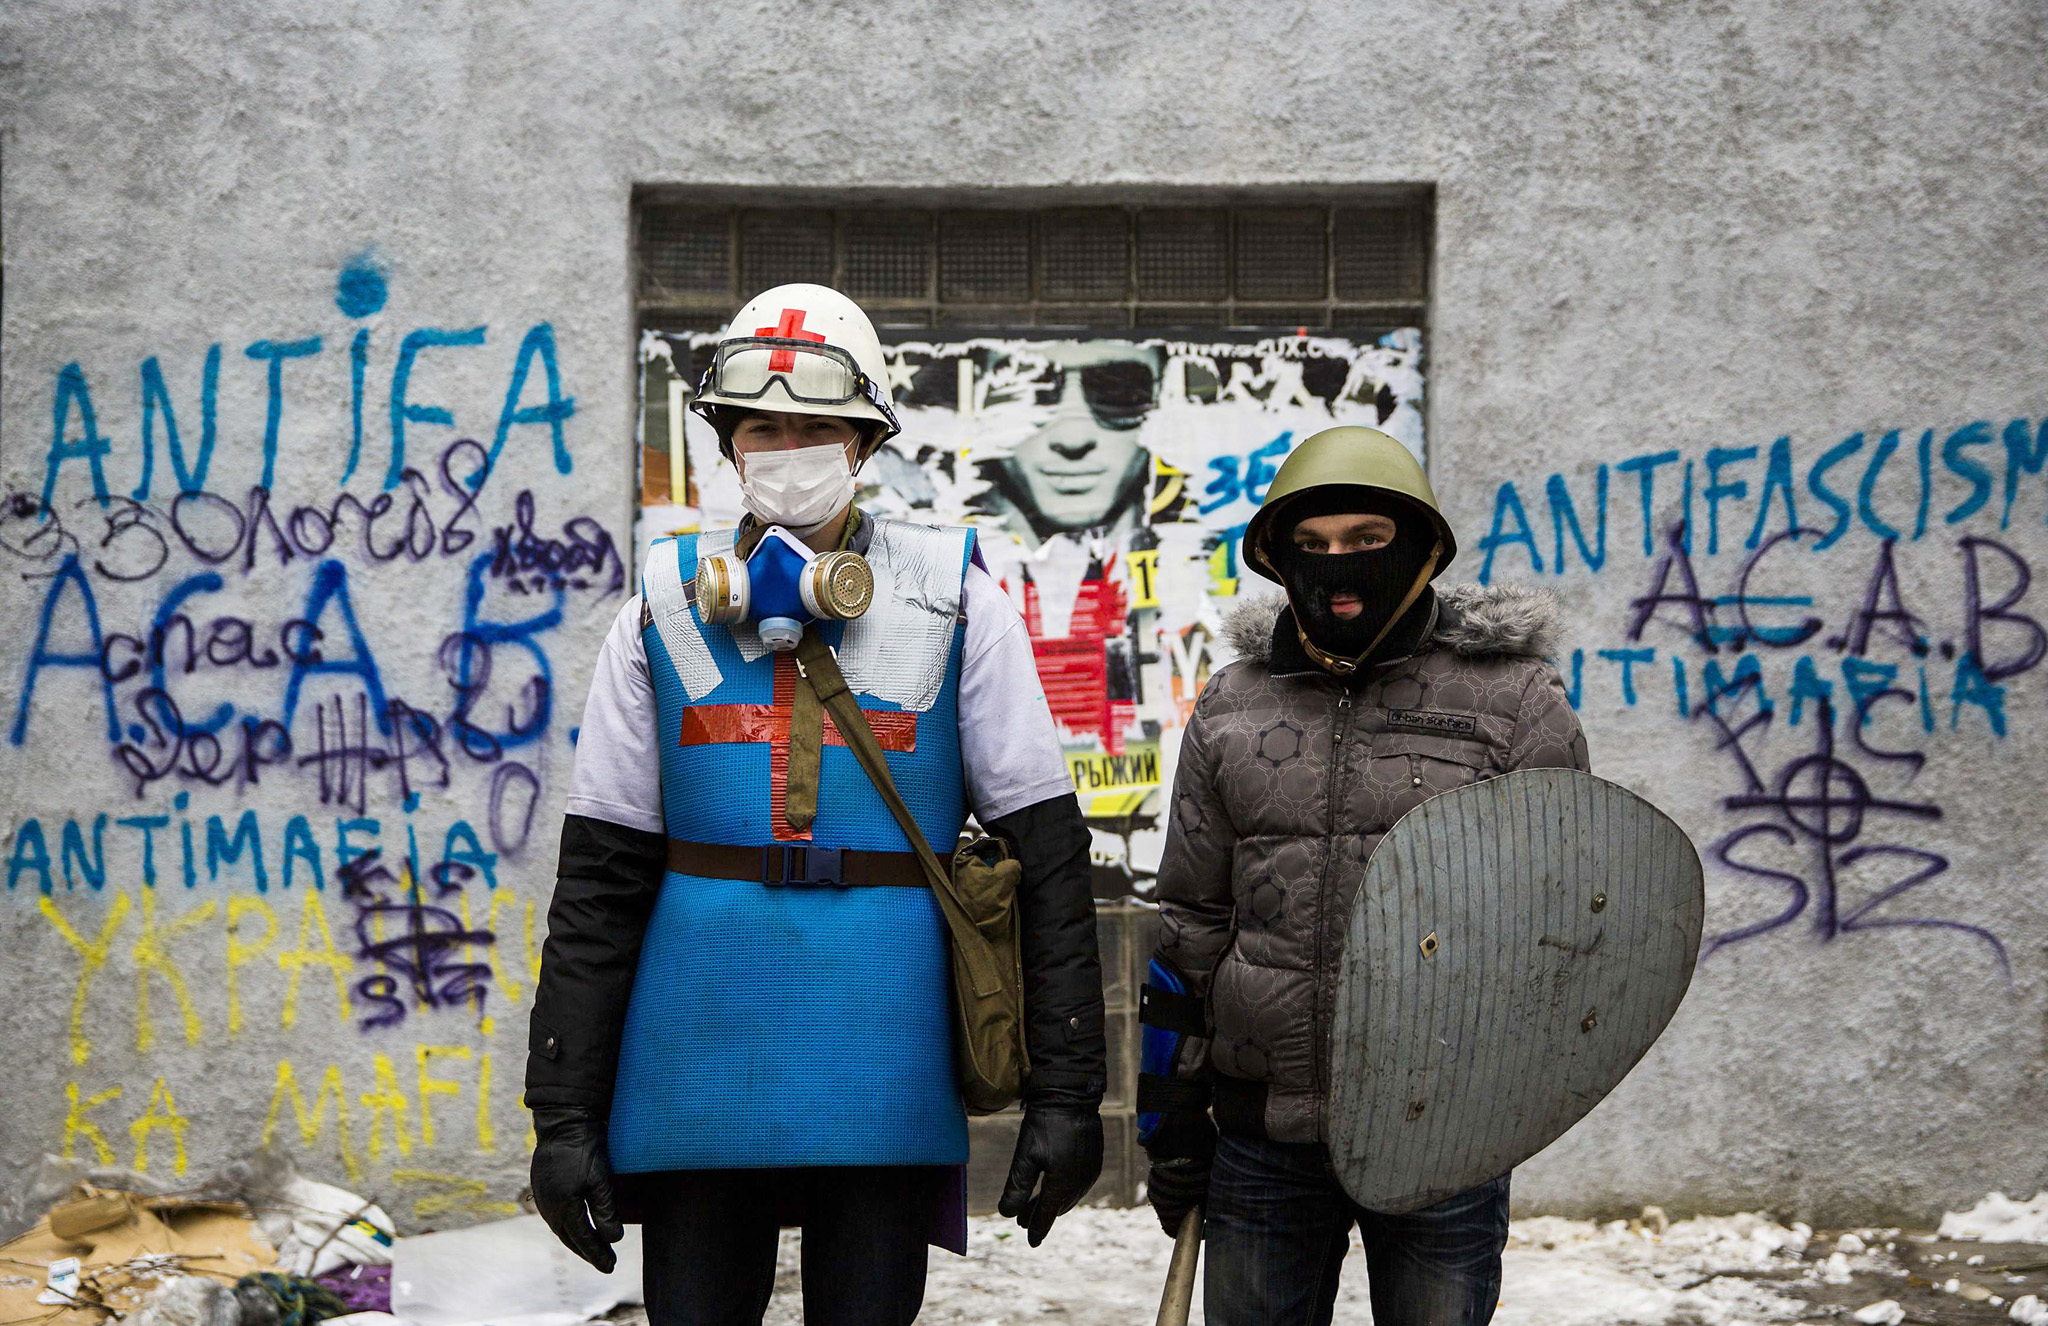 A medic of the anti-government protest camp poses for a portrait with his security guard at the barricades near the site of clashes with riot police in Kiev...A medic of the anti-government protest camp (L) poses for a portrait with his security guard at the barricades near the site of clashes with riot police in Kiev January 28, 2014. Ukrainian Prime Minister Mykola Azarov resigned on Tuesday while deputies loyal to President Viktor Yanukovich, acting to calm violent street protests, back-tracked and overturned anti-protest laws they rammed through parliament 12 days ago. REUTERS/Thomas Peter